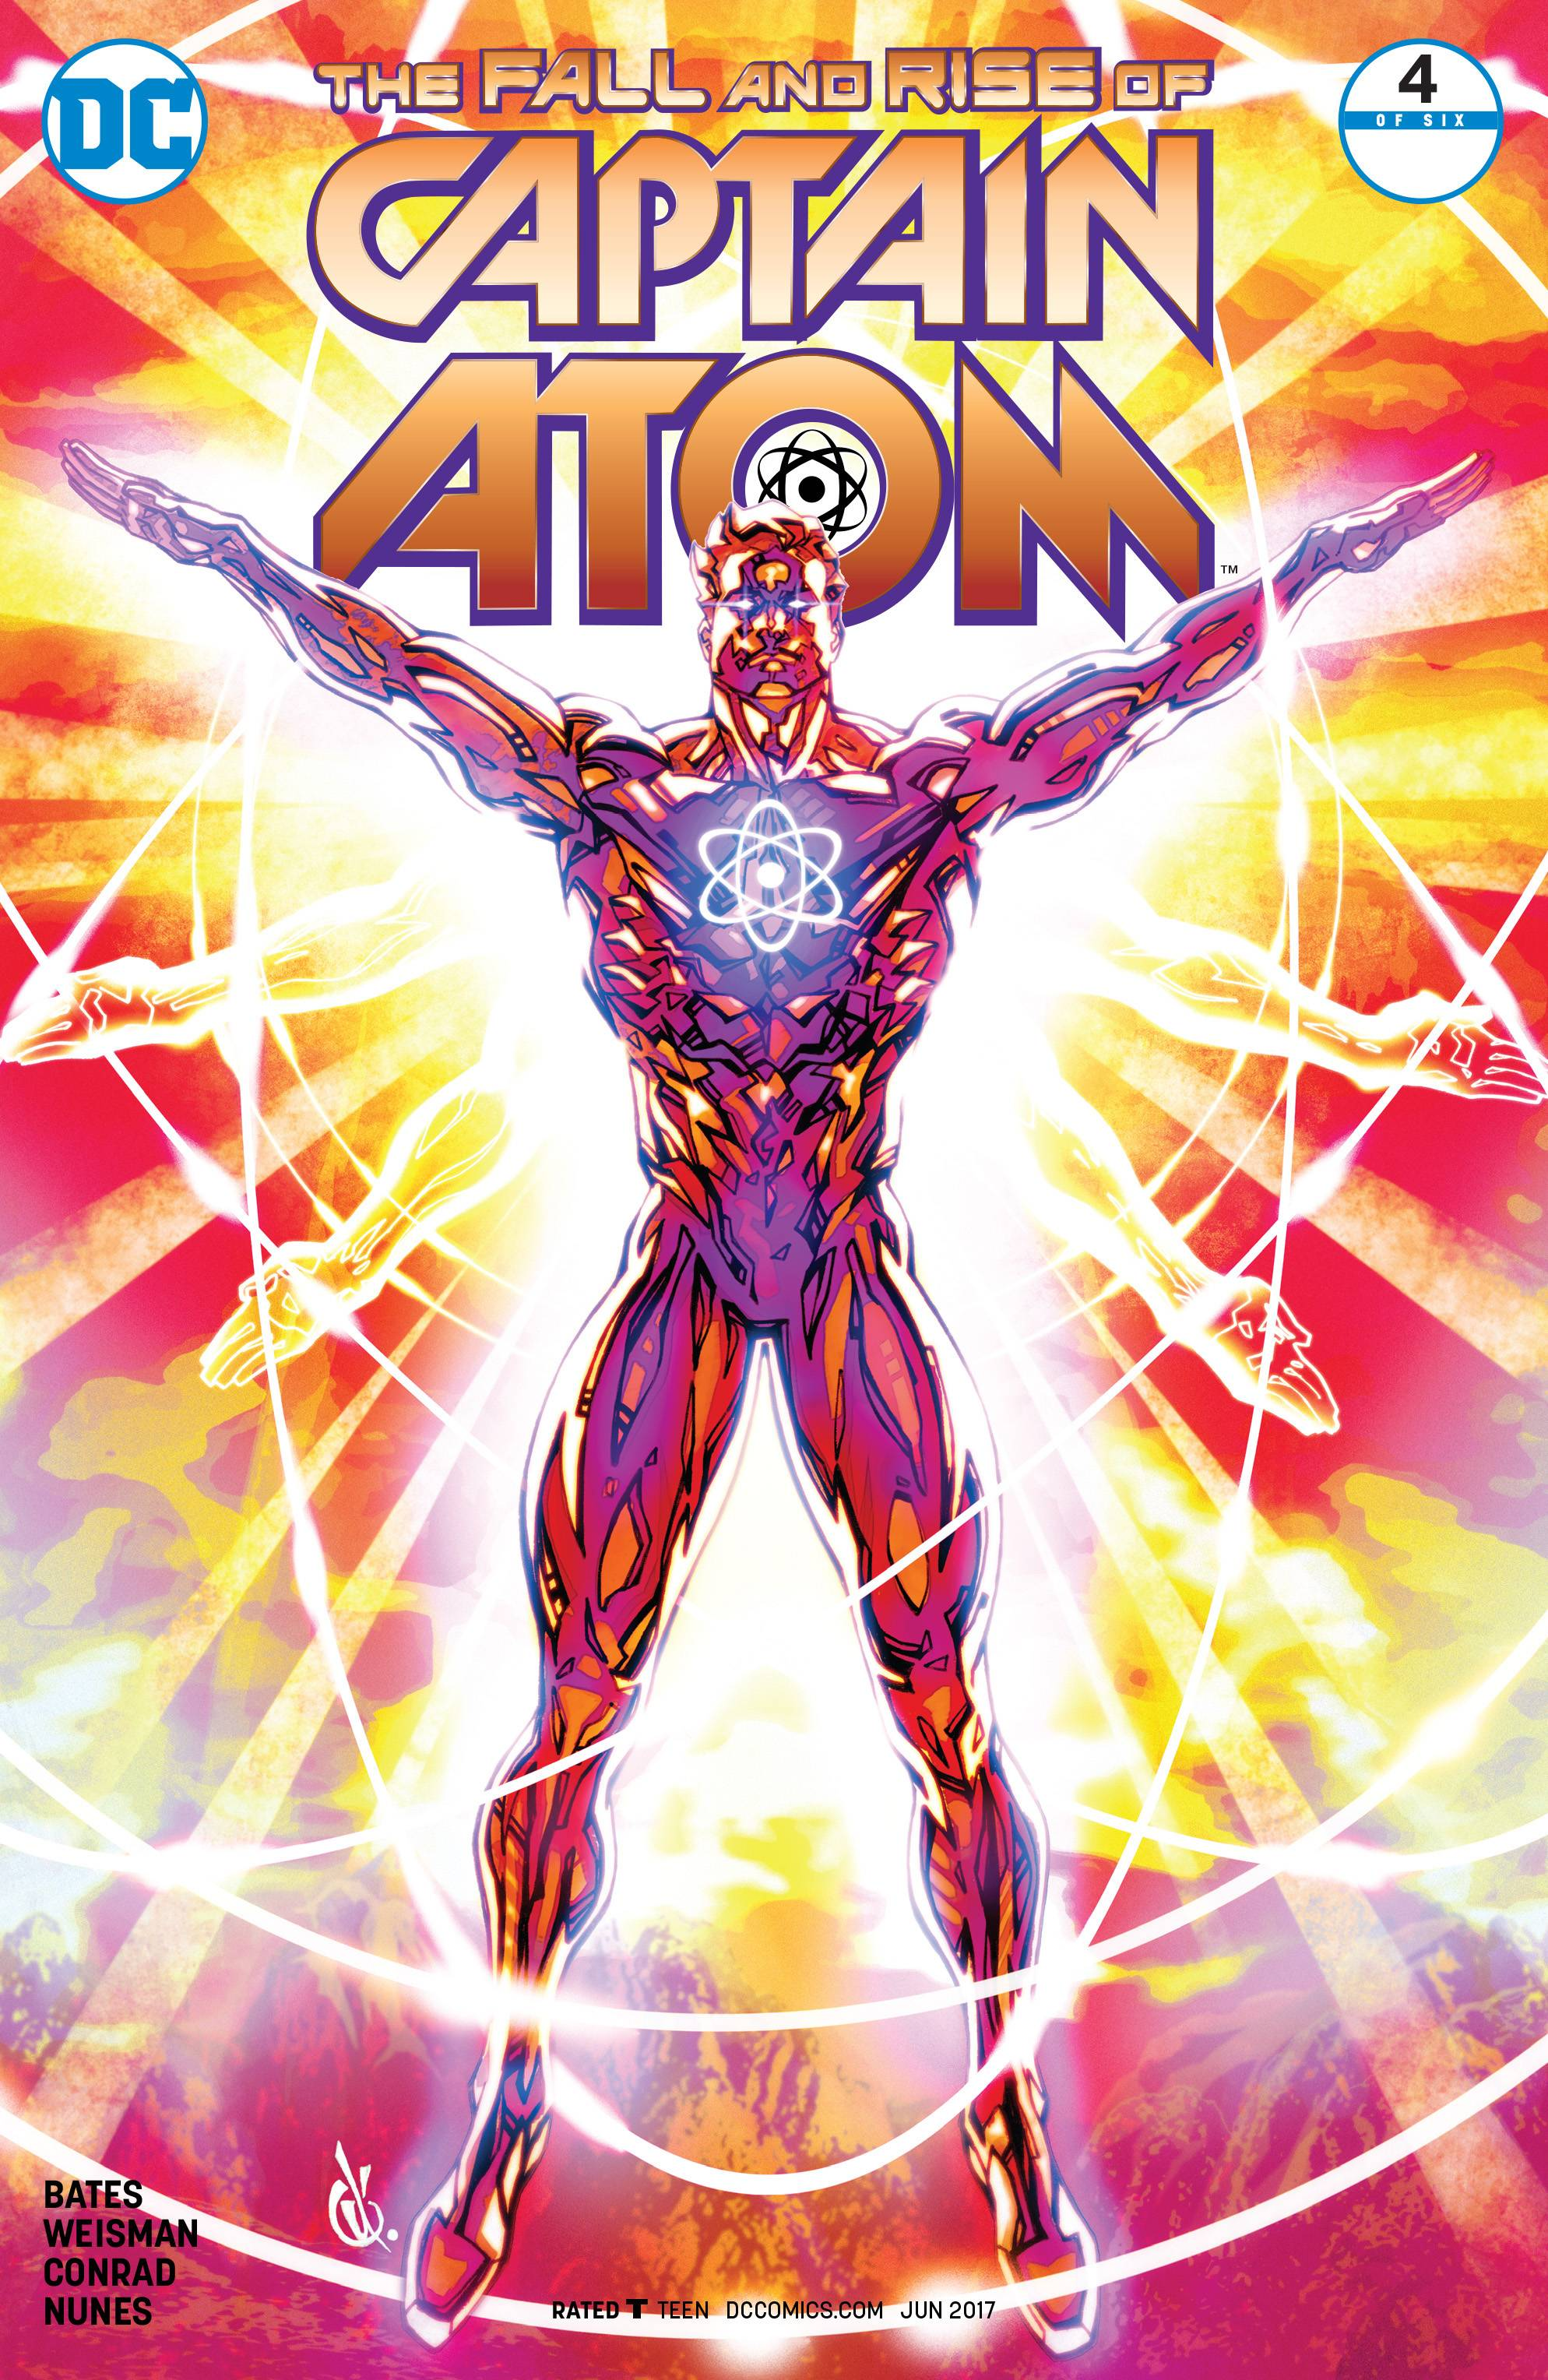 FALL AND RISE OF CAPTAIN ATOM #4